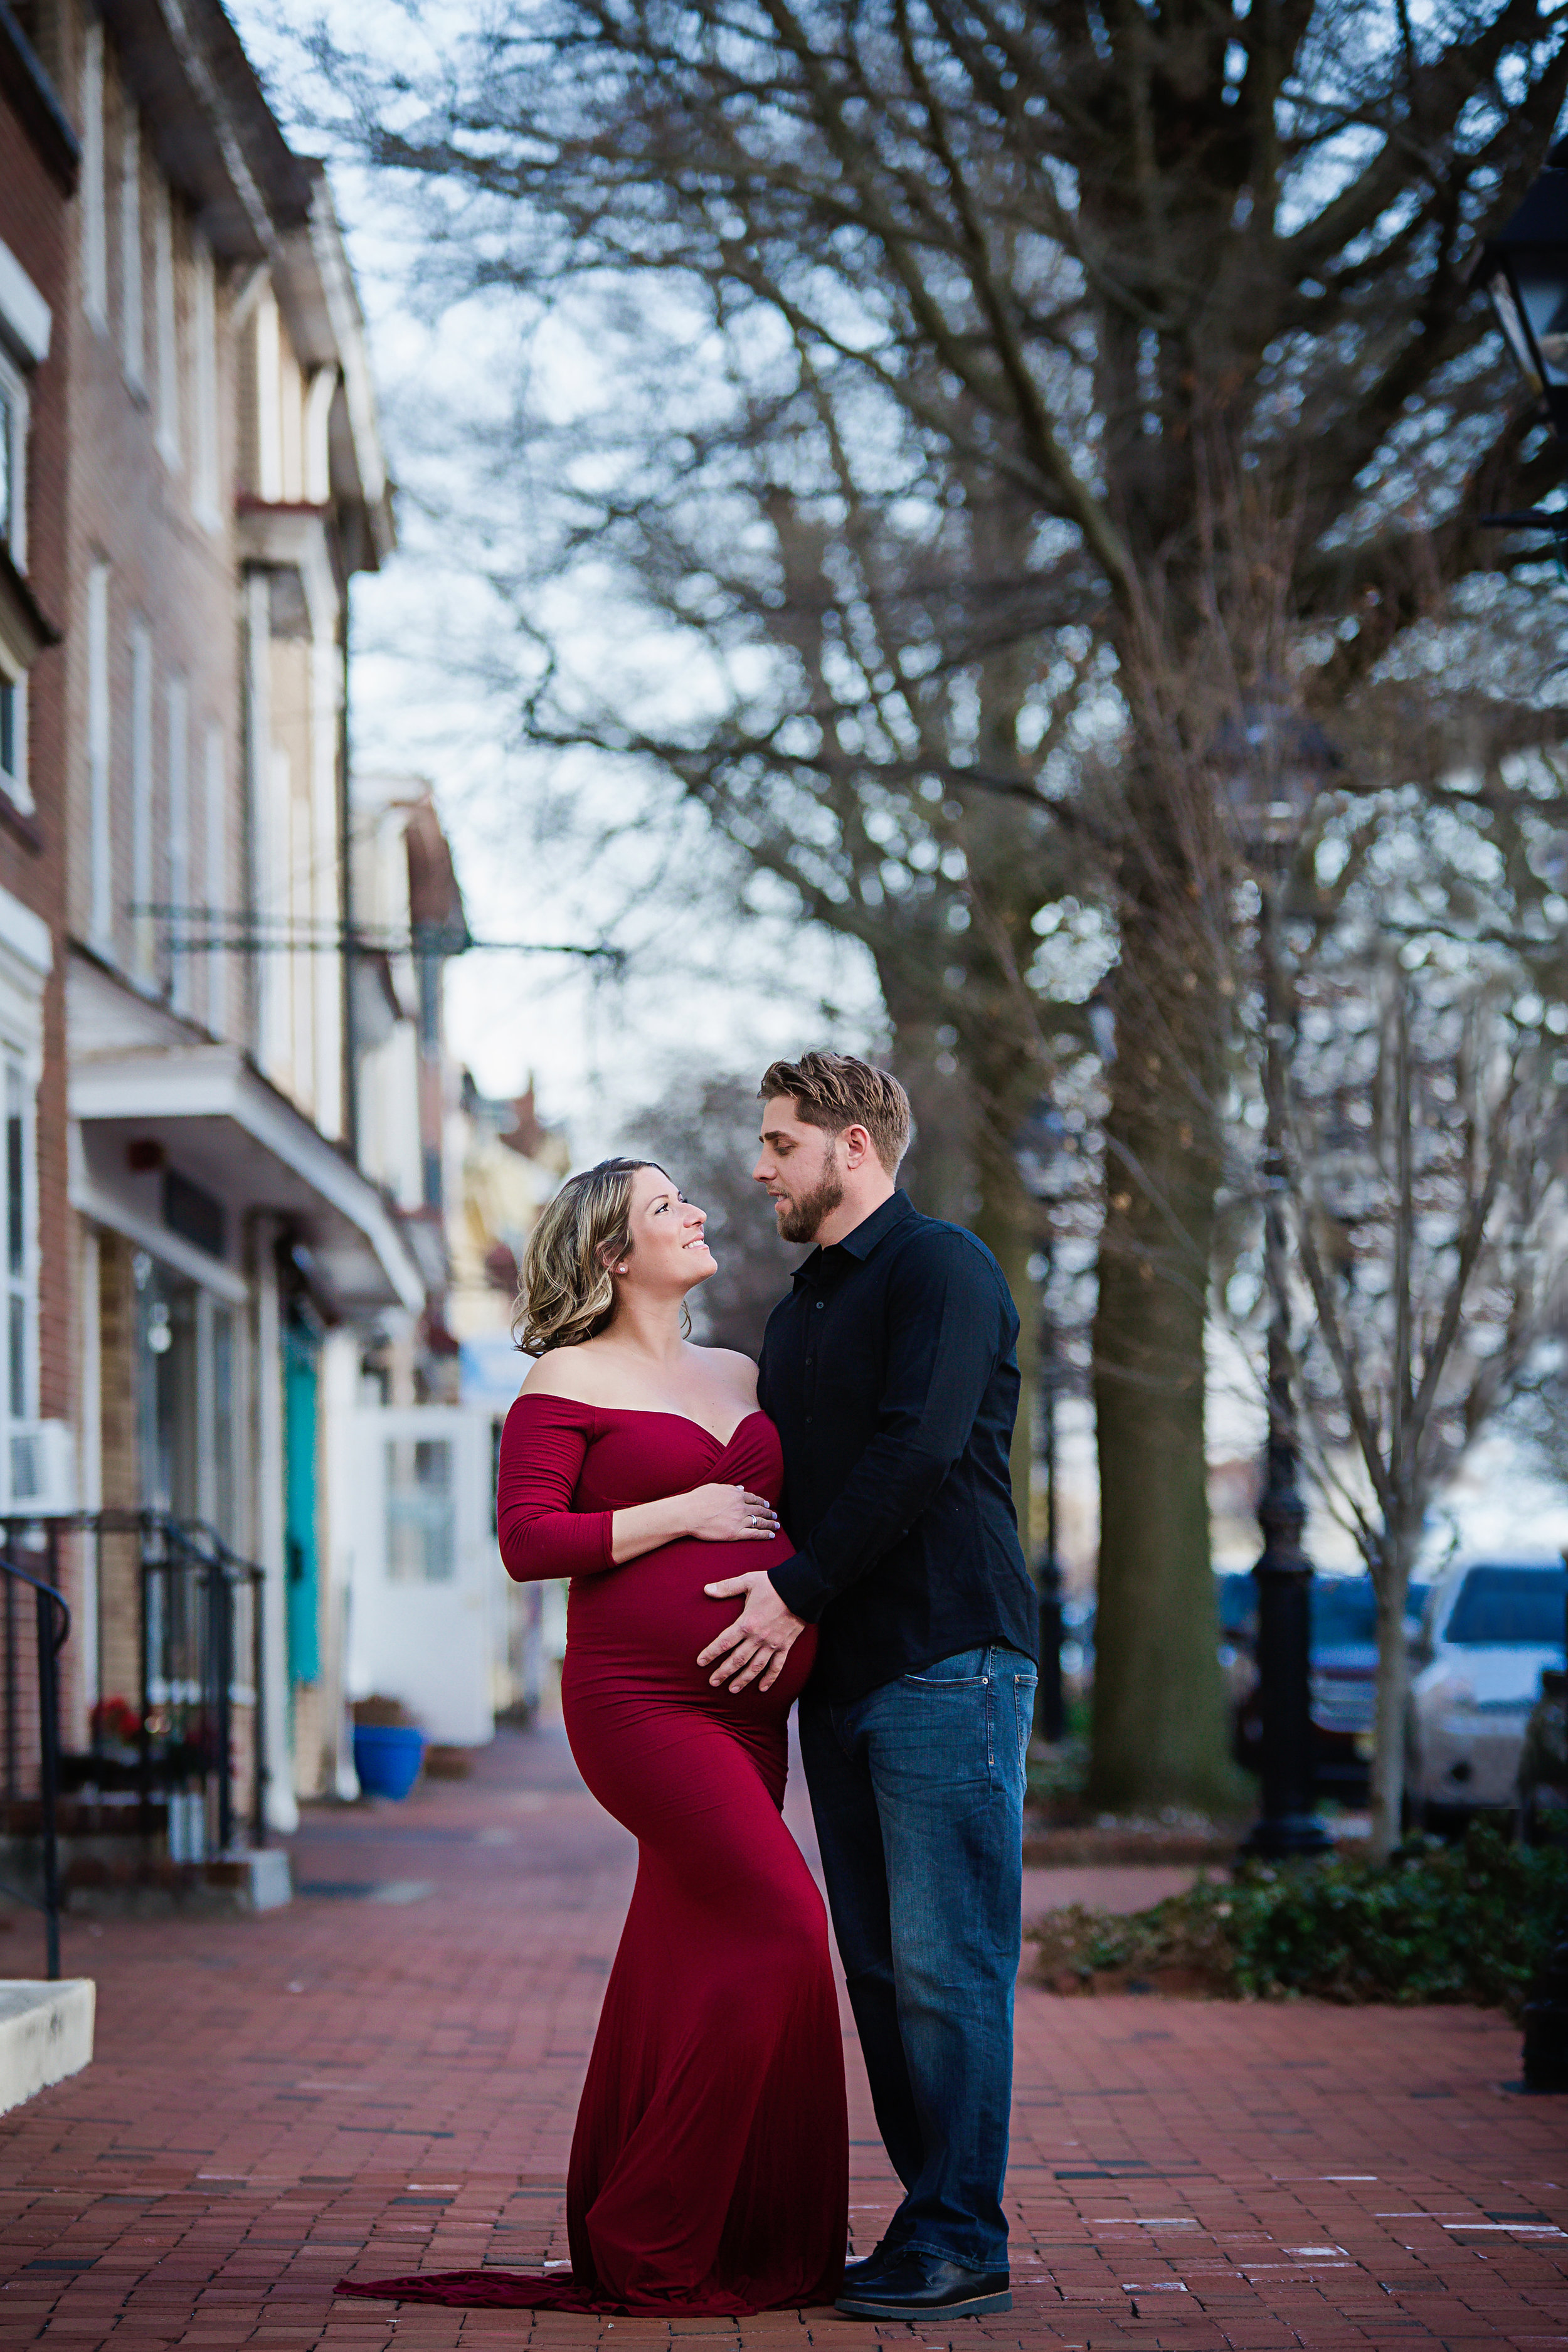 pregnany-mom-wearing-red-dress-on-brick-walkway-in-south-jersey-photo-studio